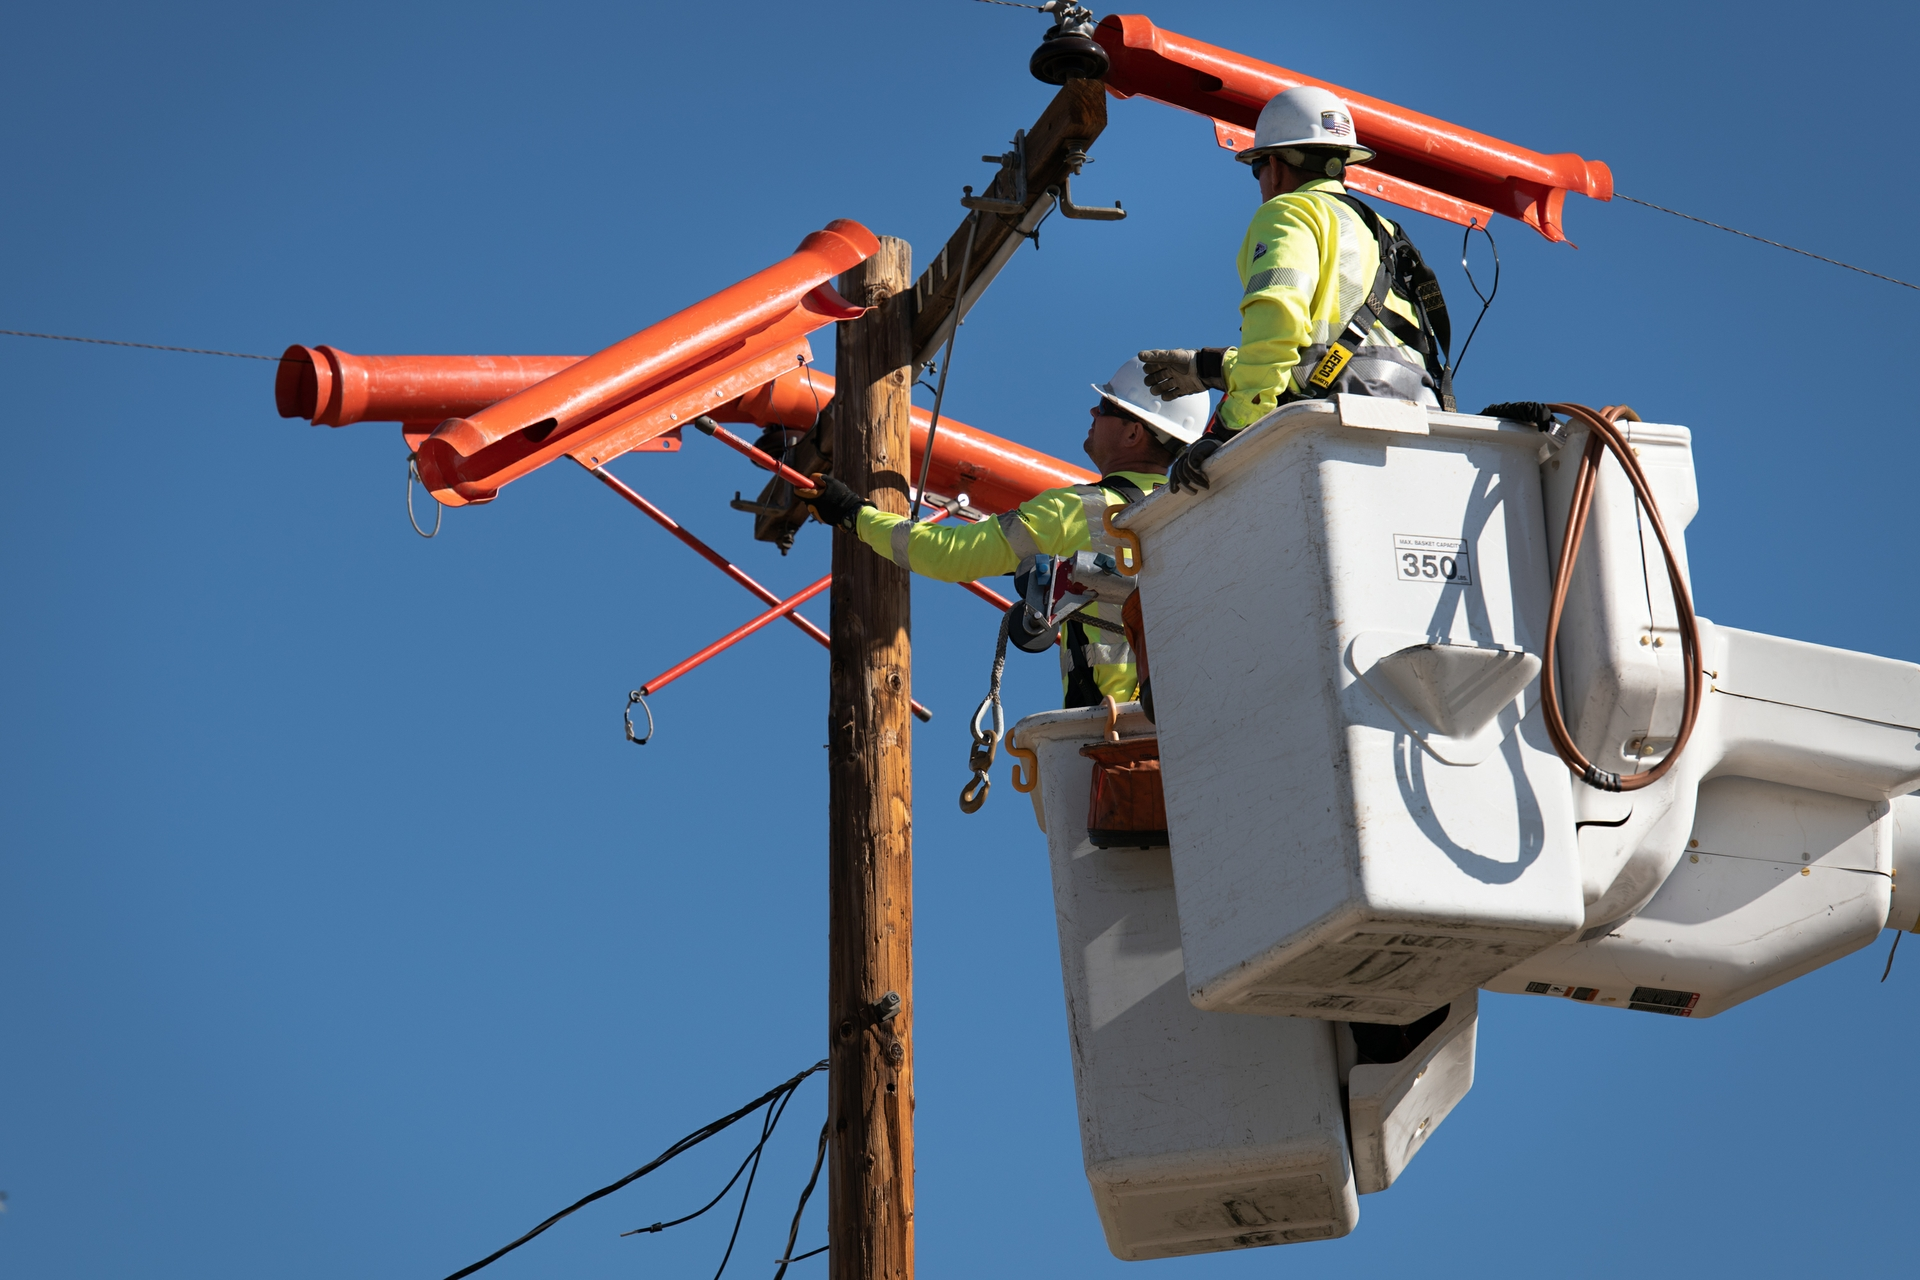 SCE Installs Covered Conductors in Wildomar District